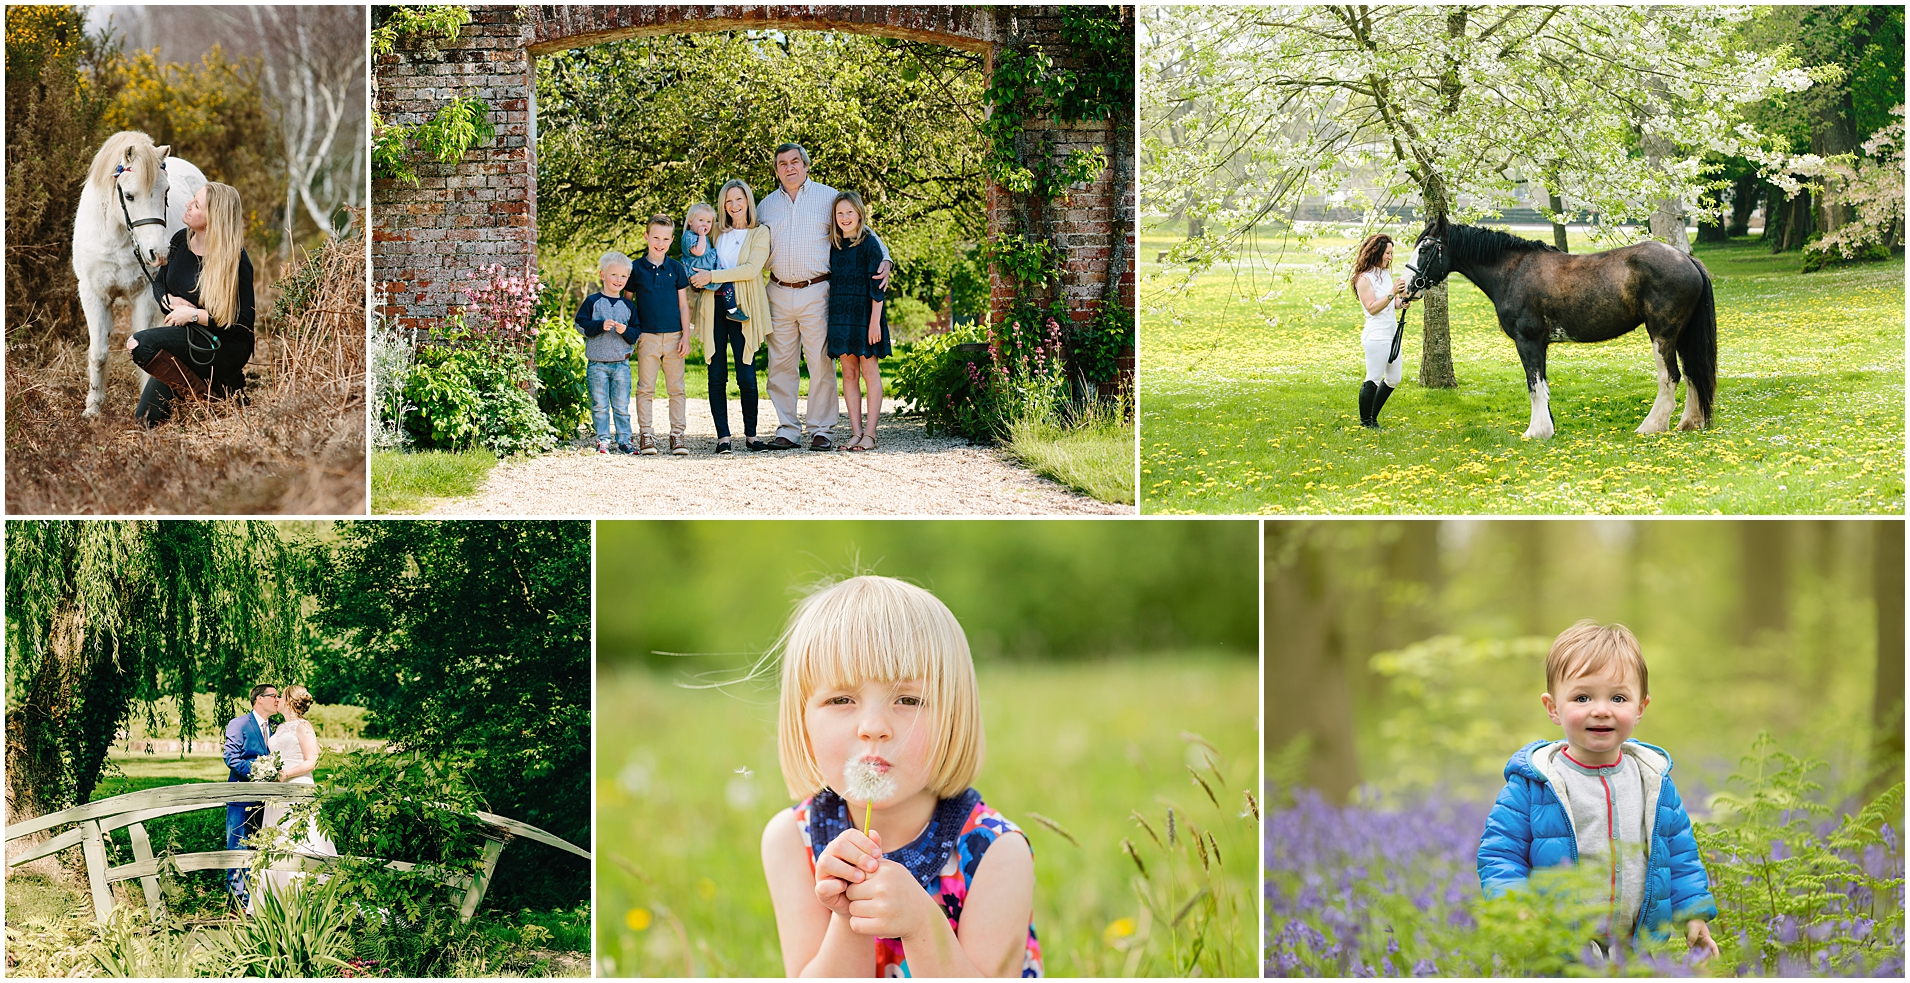 Speing equine and family photography